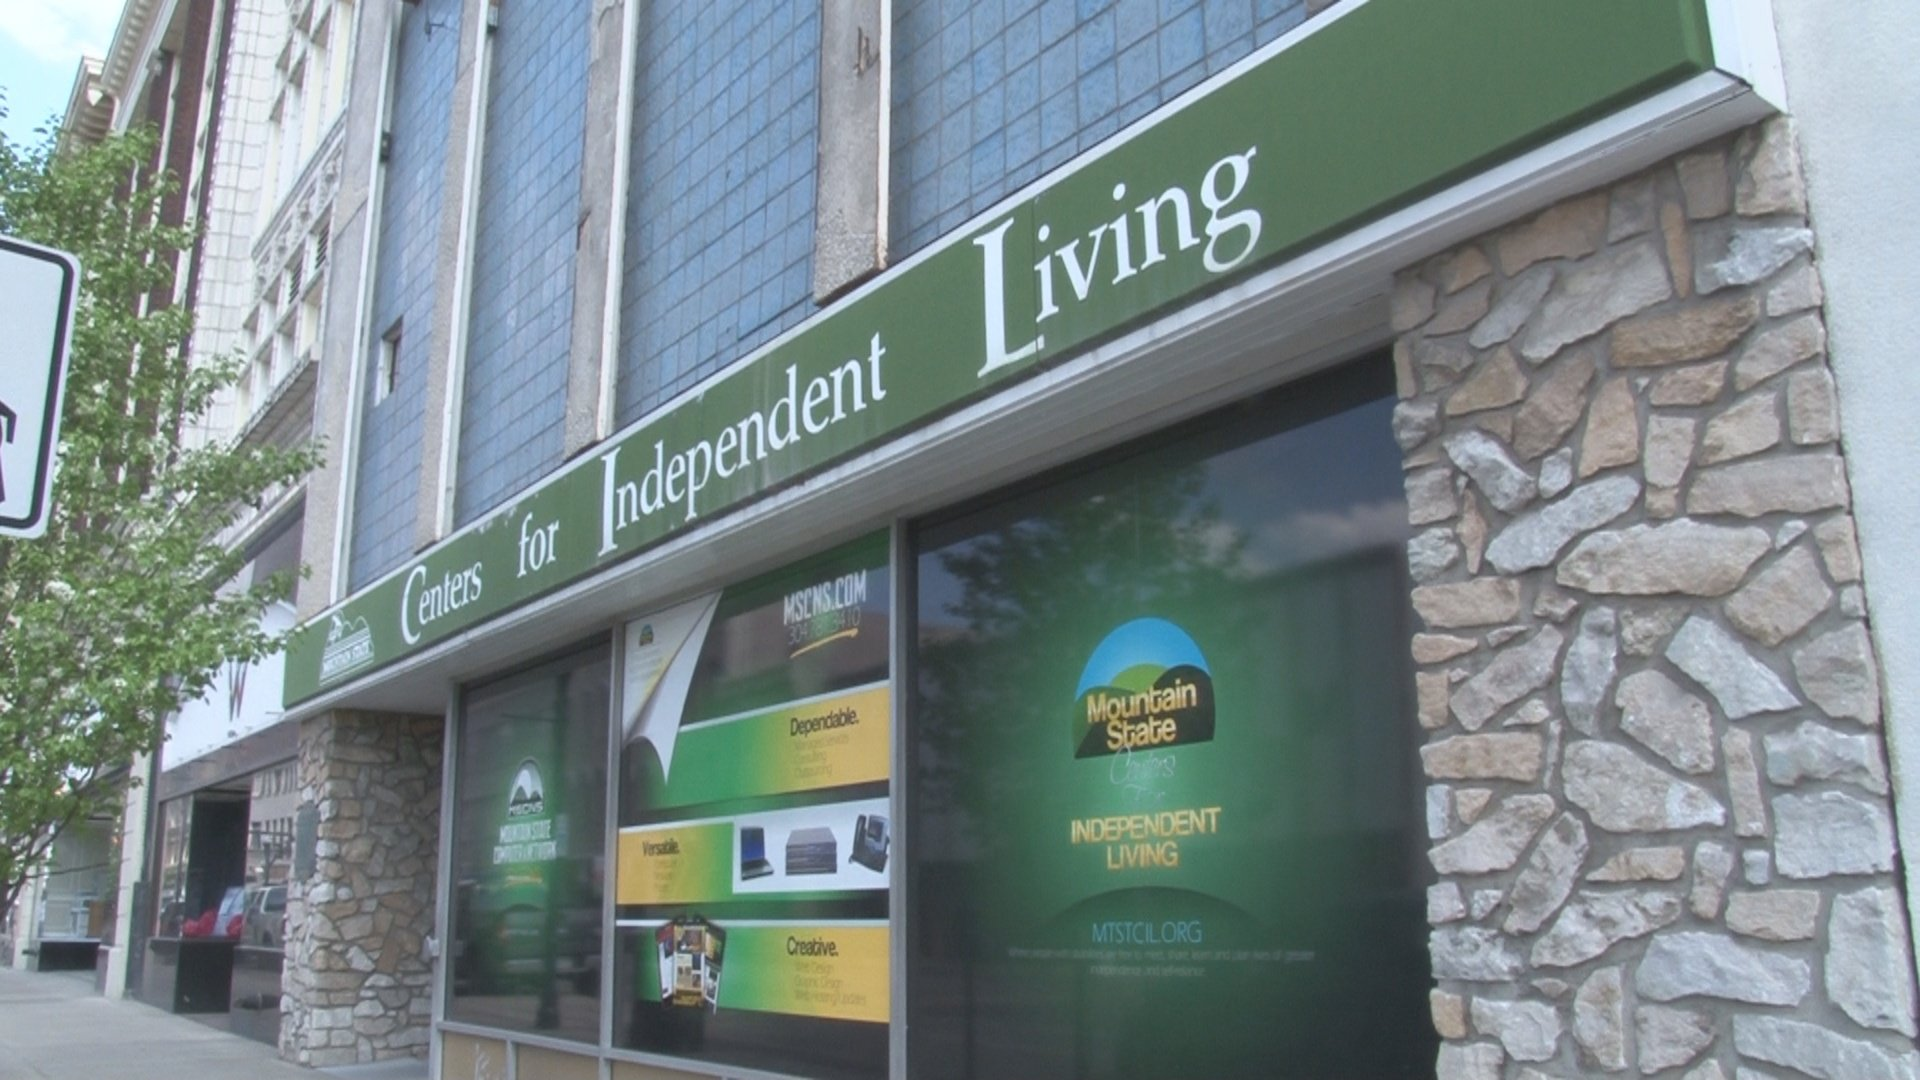 local independent living center helping boston bombing victims wowk